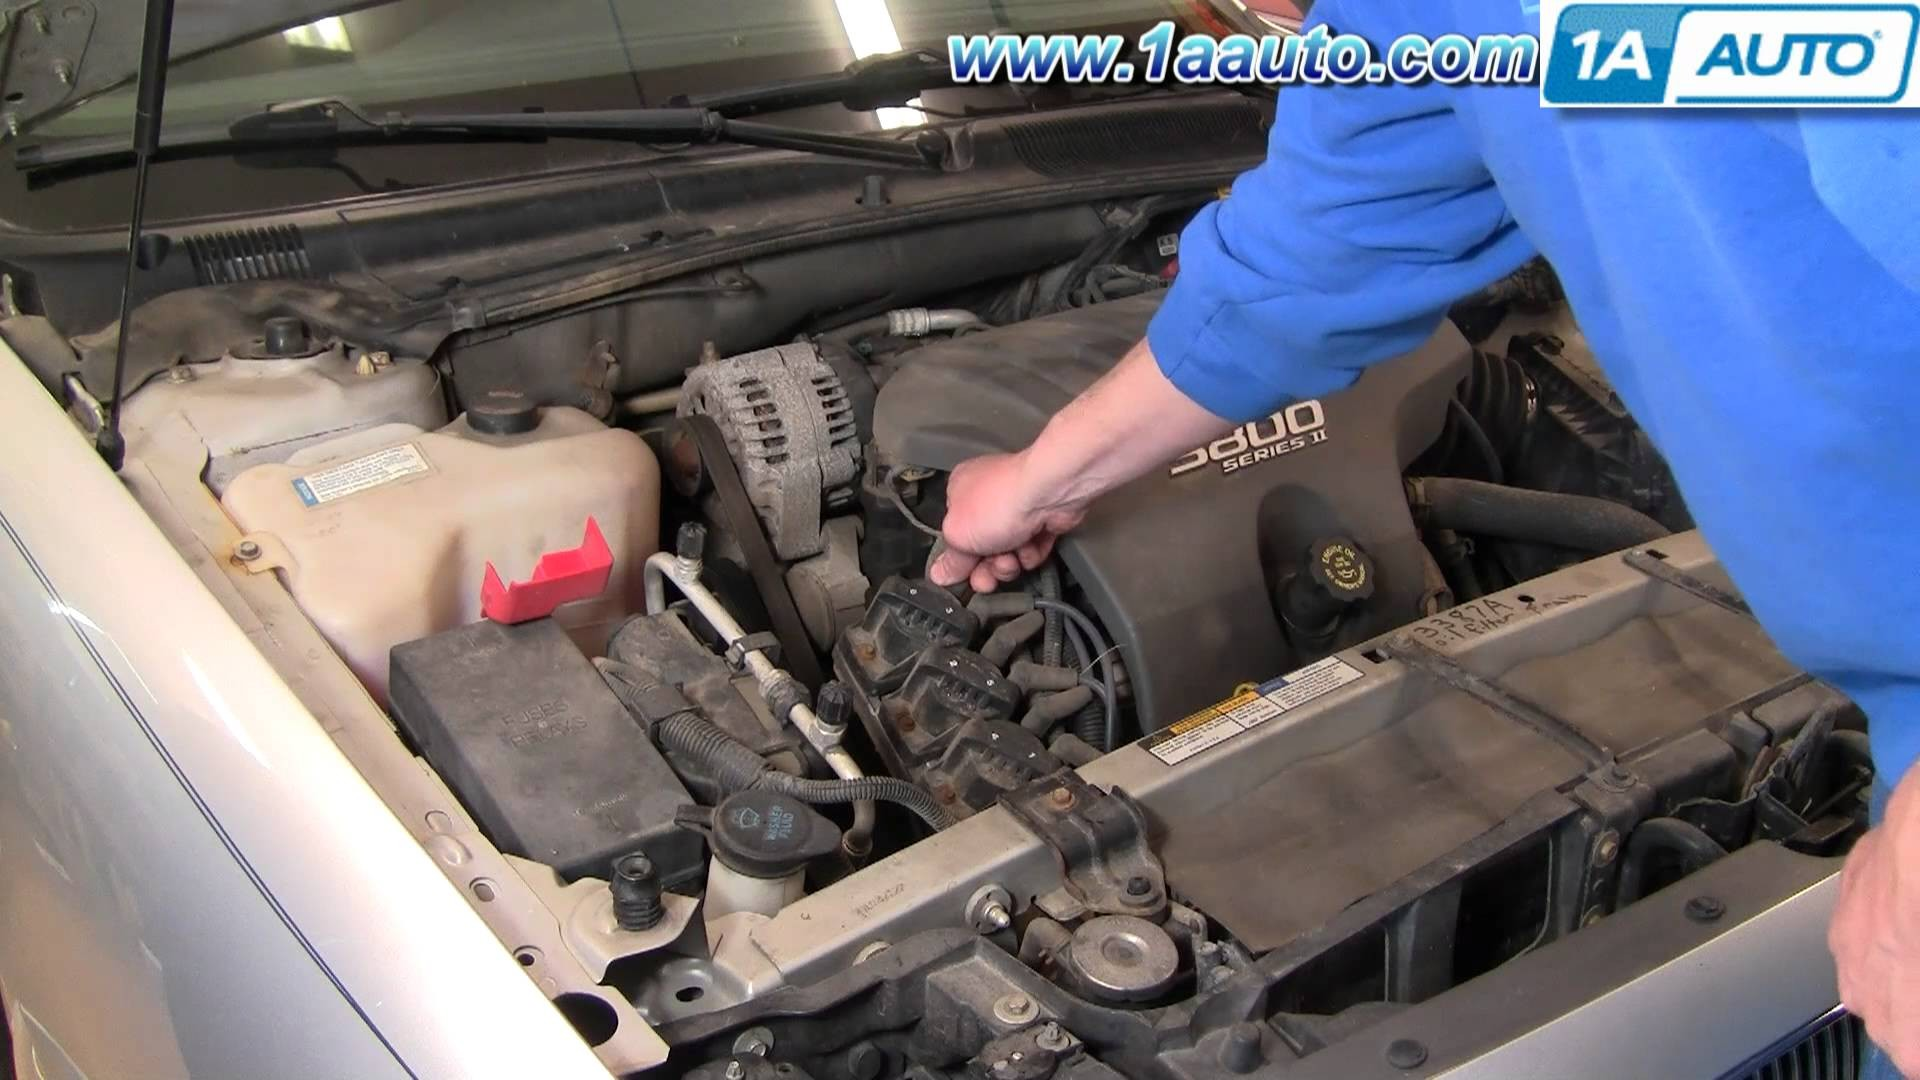 Gm 3800 V6 Engine Diagram How To Install Replace Spark Plug Wires Wiring Ignition Coil Buick Lesabre Of